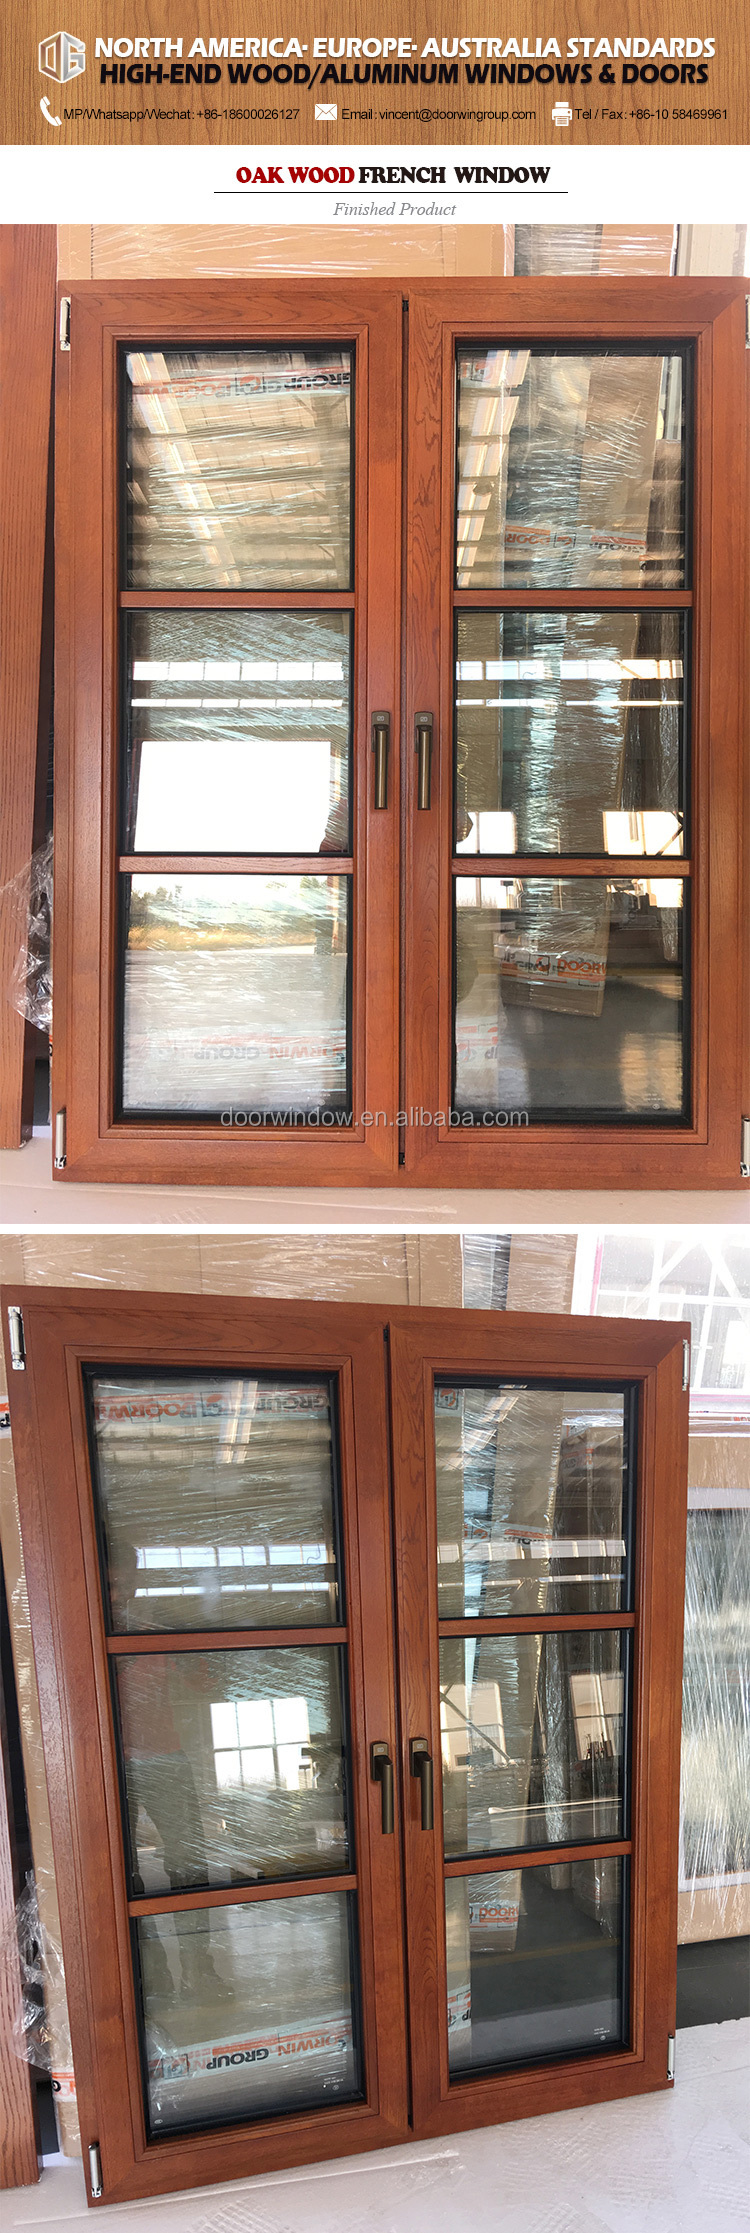 Los Angeles European style 6 panel design grille french window with wooden frames for sale Aluminium Grill Casement Glass Window